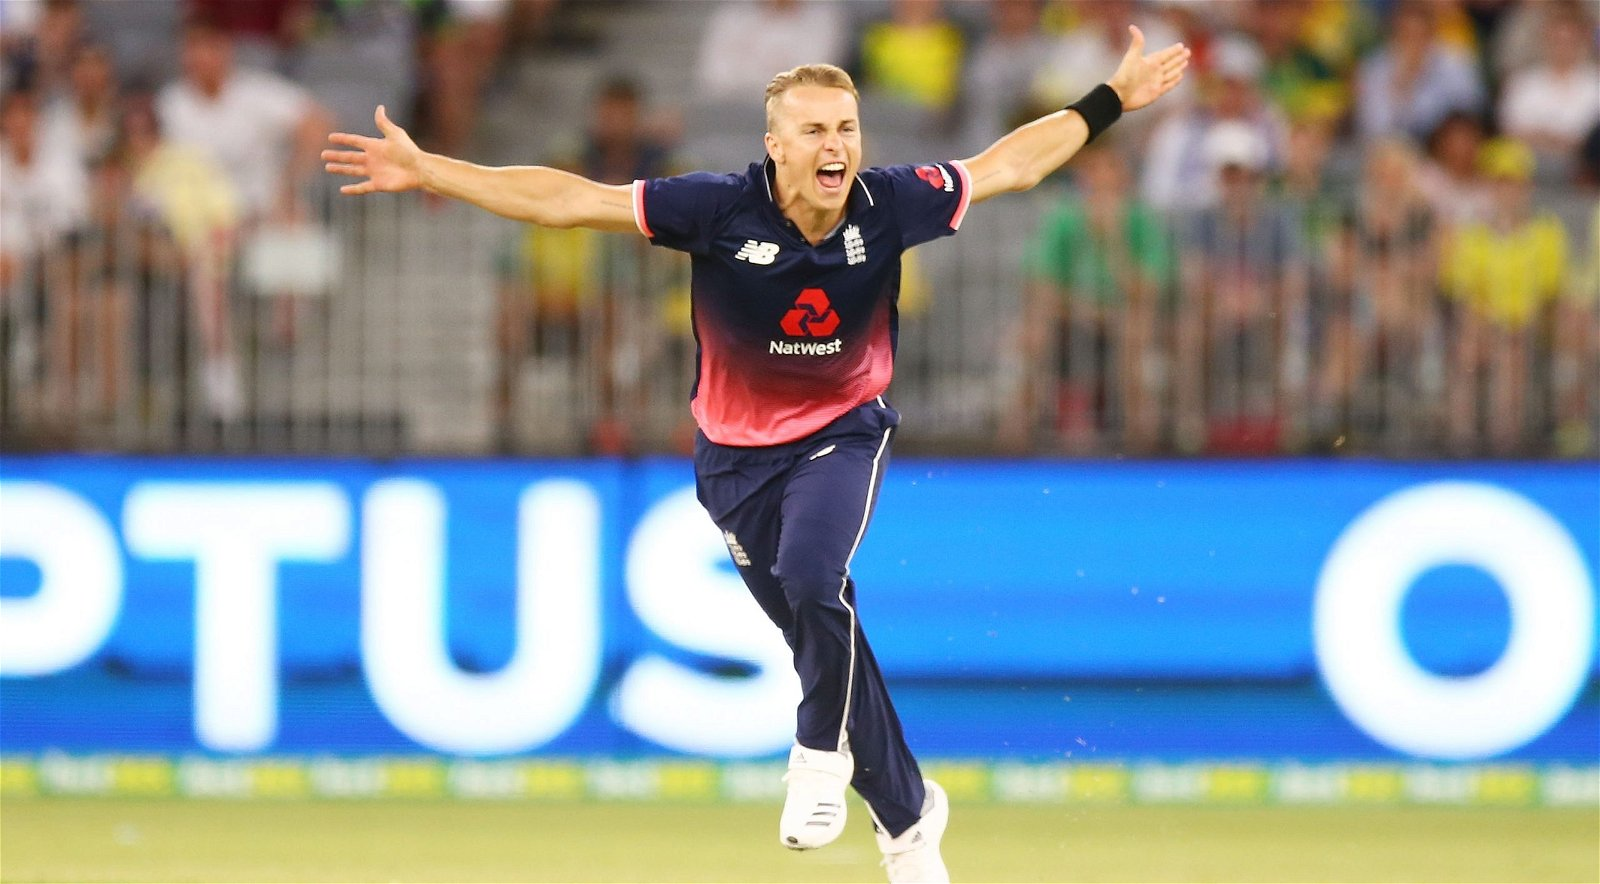 Tom Curran Carries Himself Like A World-Class Cricketer, But Can He Bowl Like One?